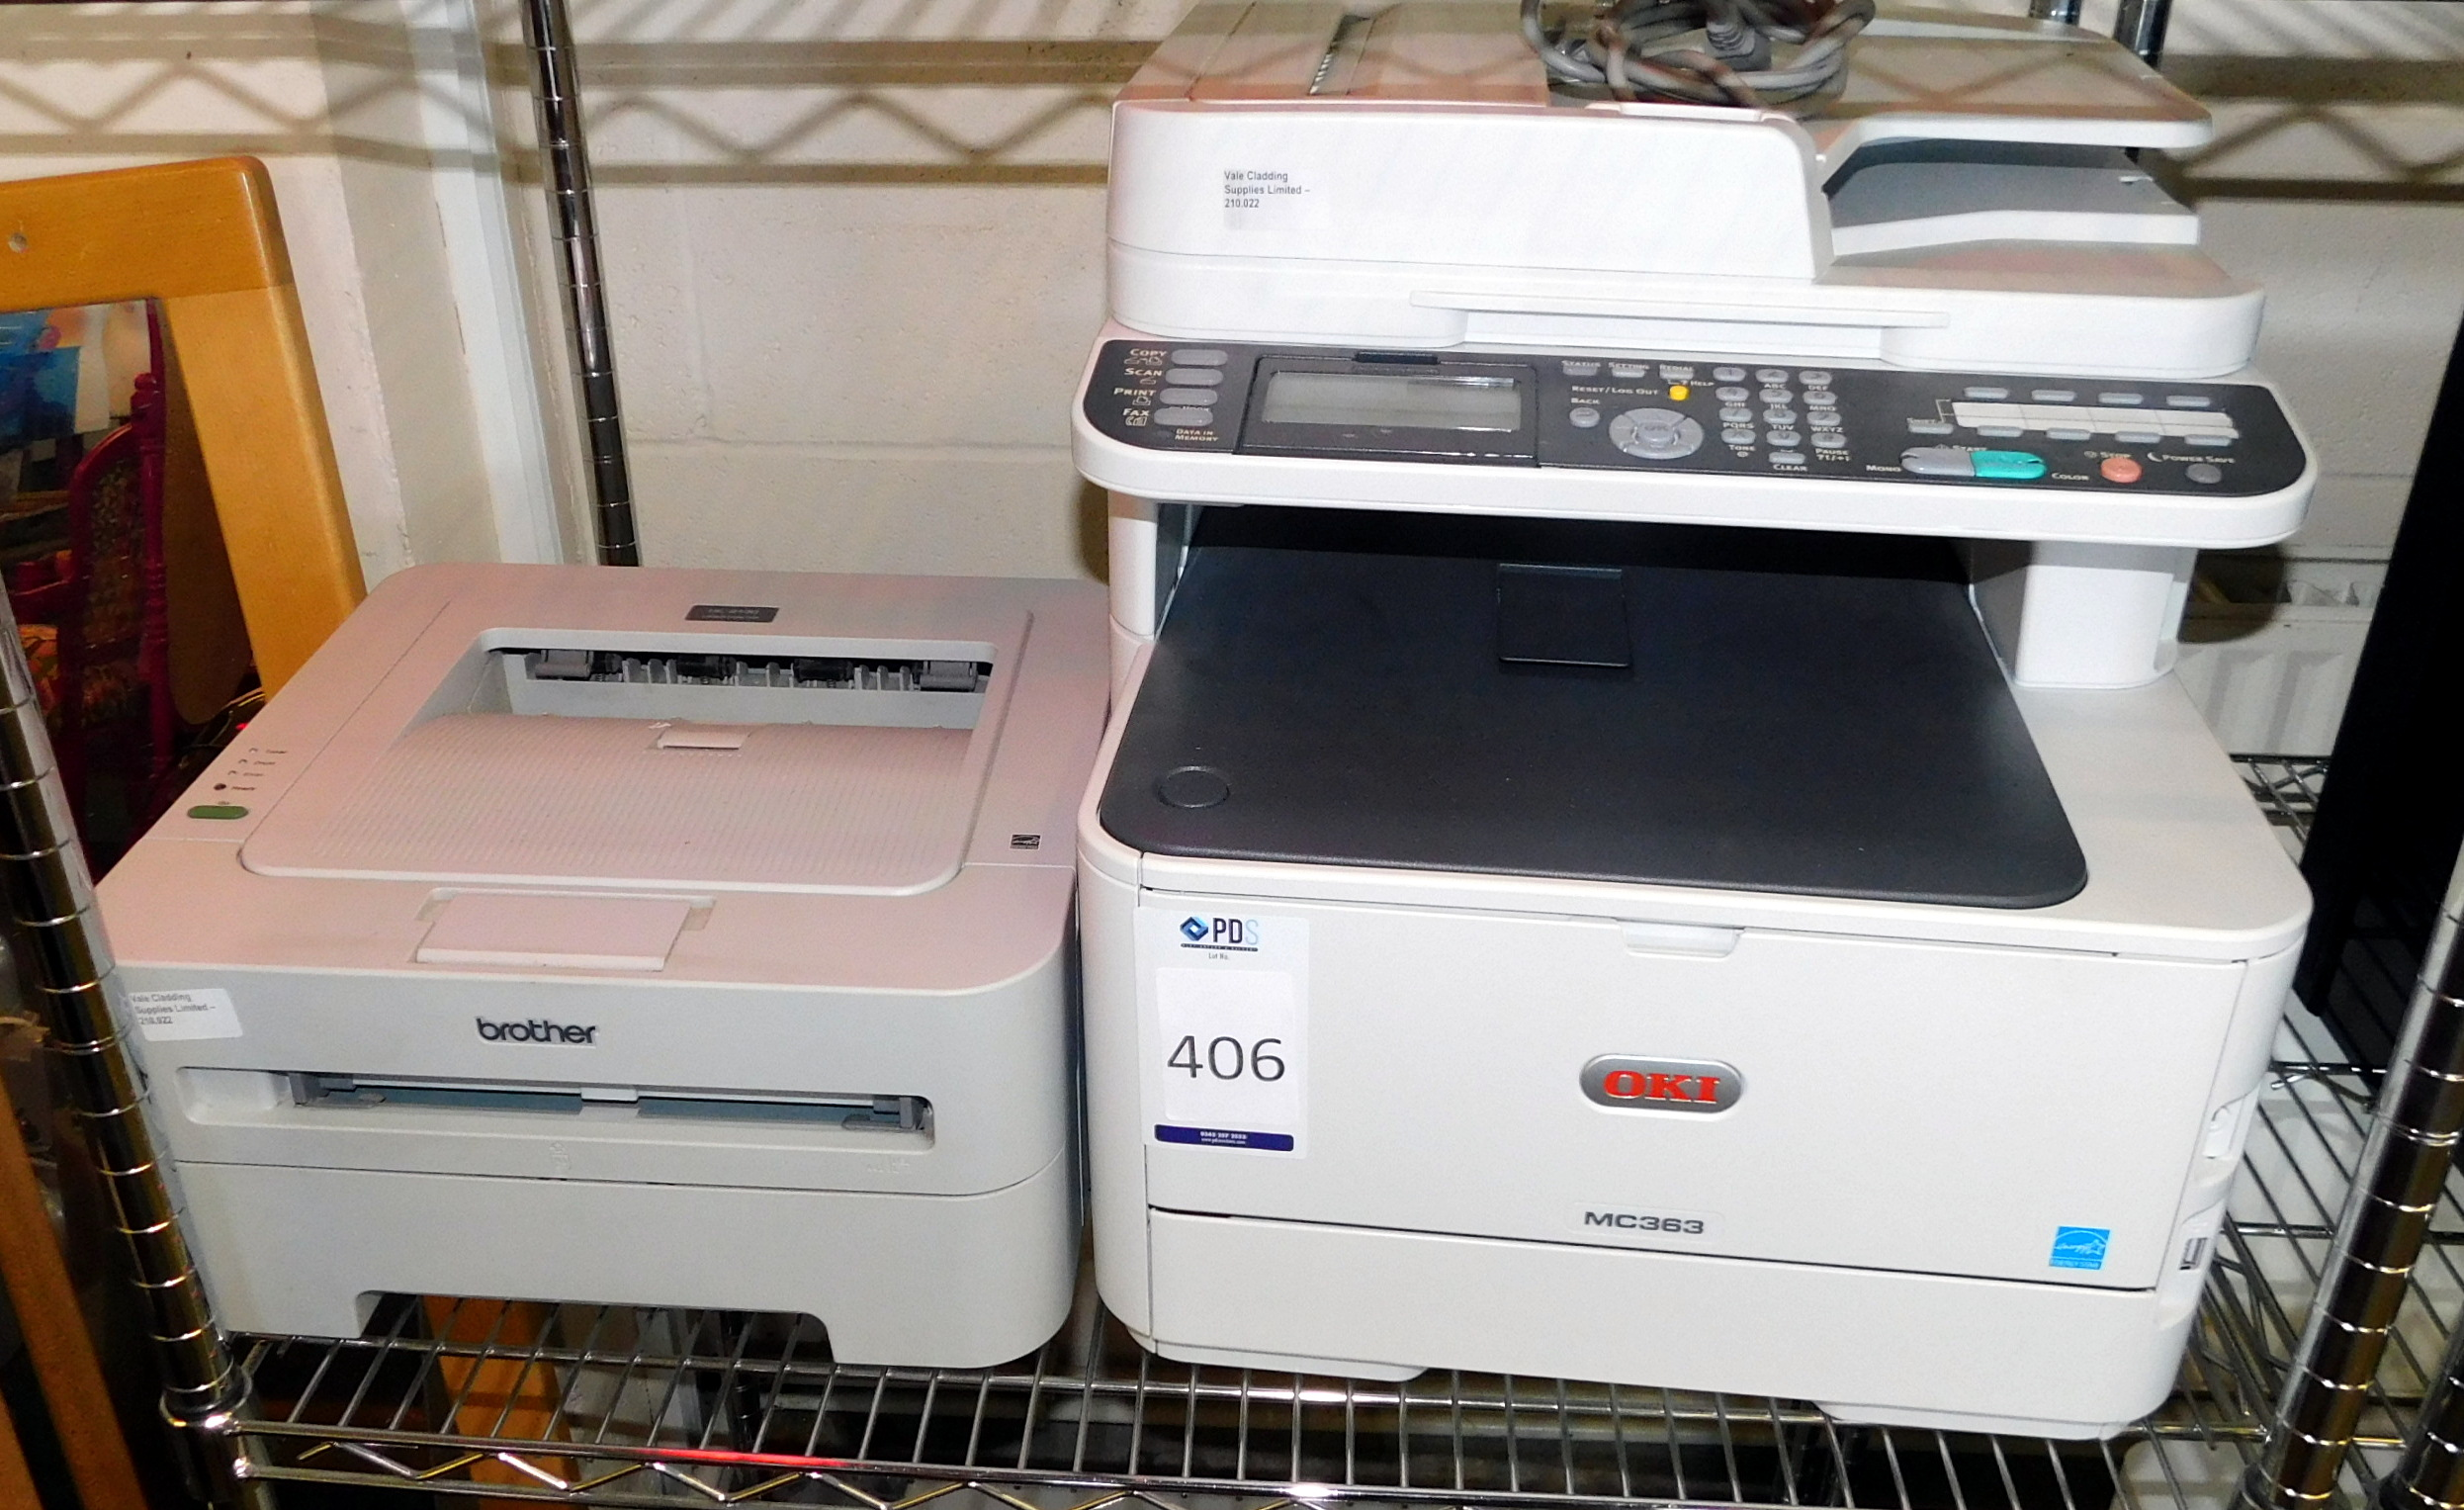 Los 406 - OKI MC363 Multi Format & Brother HL-2130 Printers (Located Stockport – See General Notes for Full